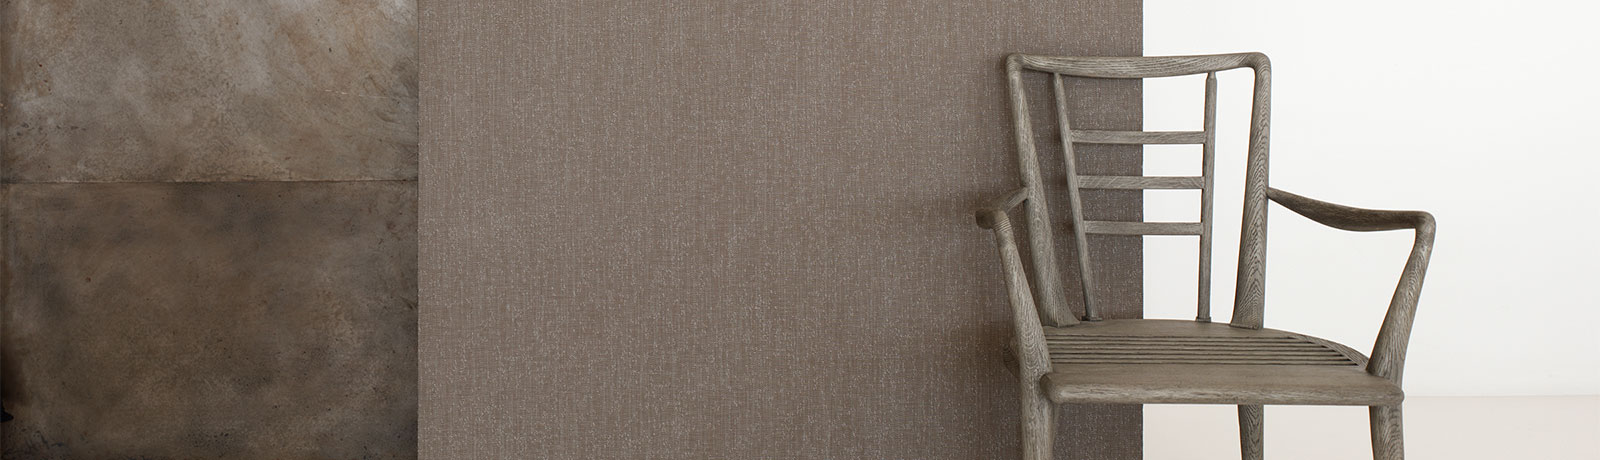 1600x460contract_wall_speckle_taupe